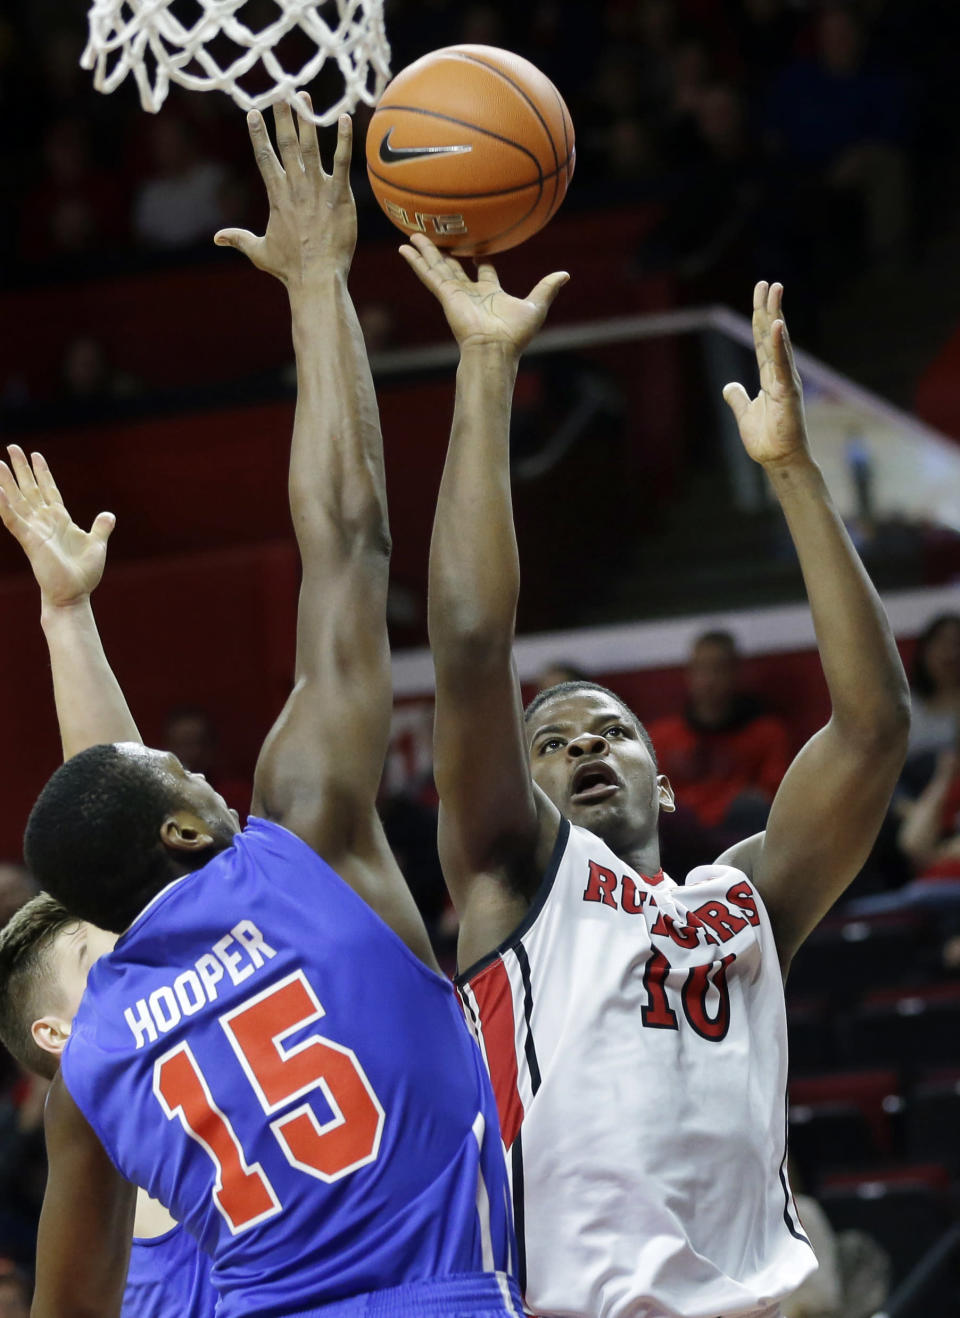 Rutgers' Junior Etou, of Republic of Congo, (10) takes a shot past St. Francis Brooklyn's Chris Hooper (15) during the first half of an NCAA college basketball game Sunday, Nov. 23, 2014, in Piscataway, N.J. (AP Photo/Mel Evans)